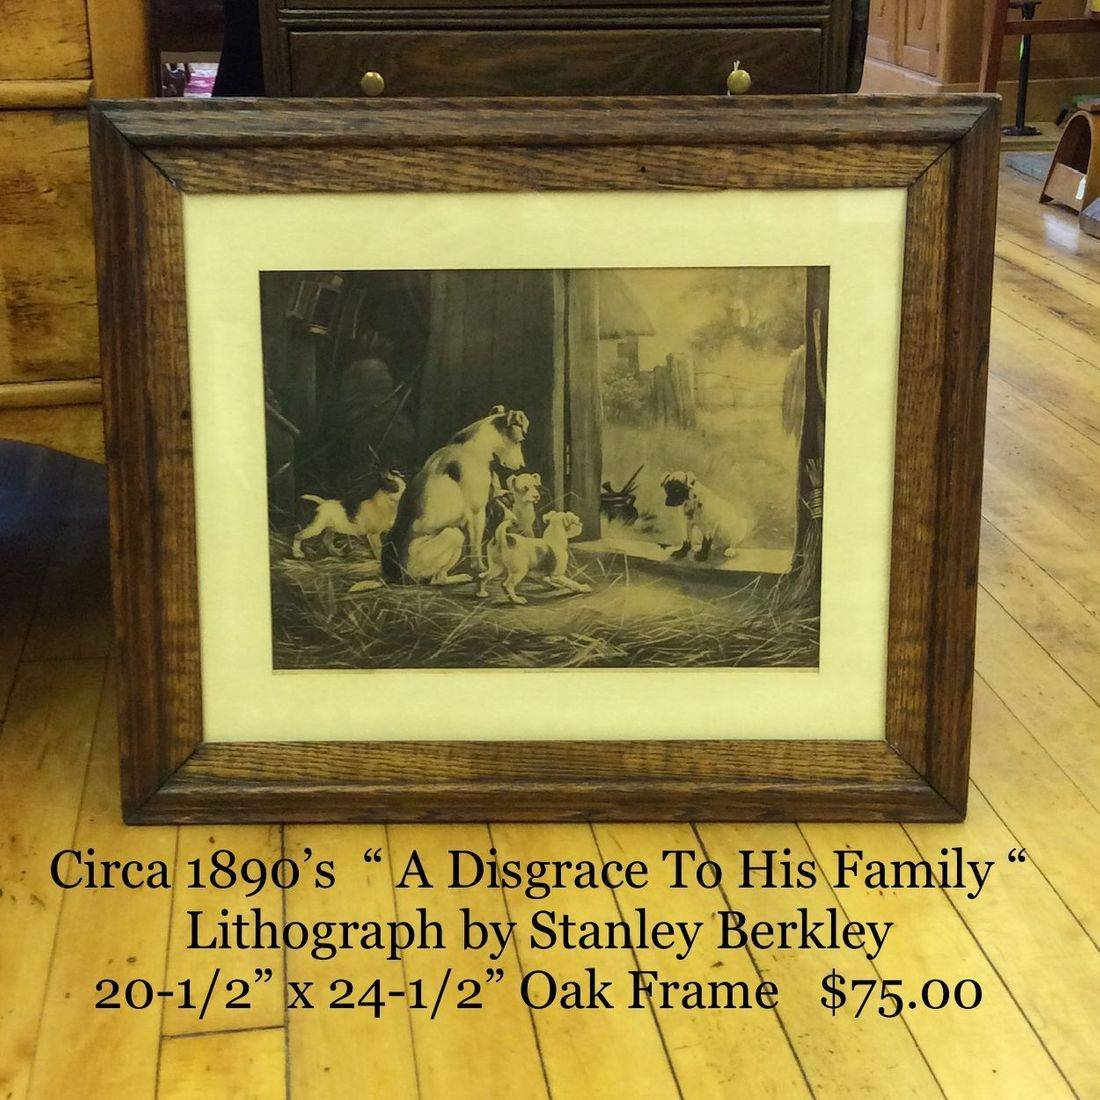 """Circa 1890's  'A Disgrace To His Family' Litho by Stanley Berkley - 20-1/2"""" x 24-1/2"""" Frame   $75.00"""